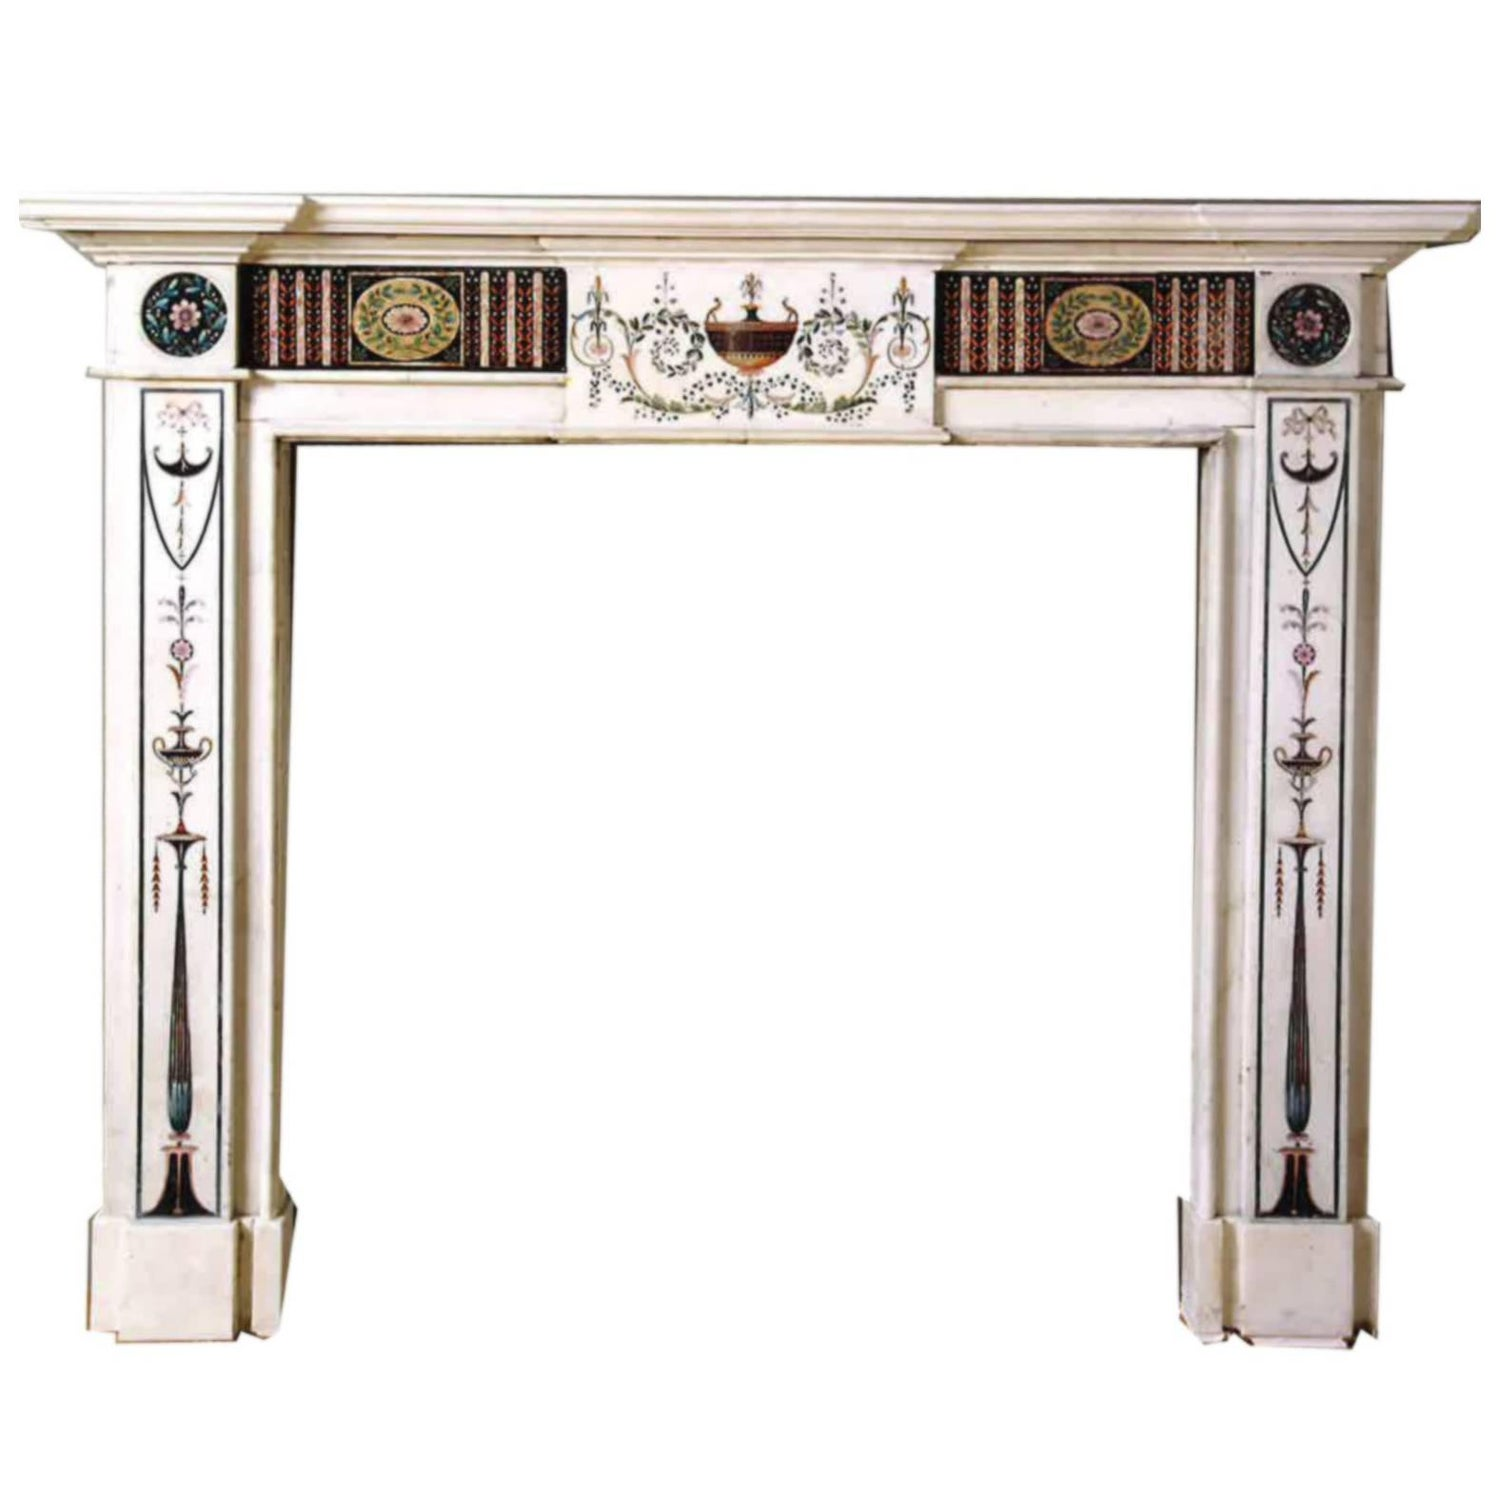 inlay fireplaces and mantels 37 for sale at 1stdibs